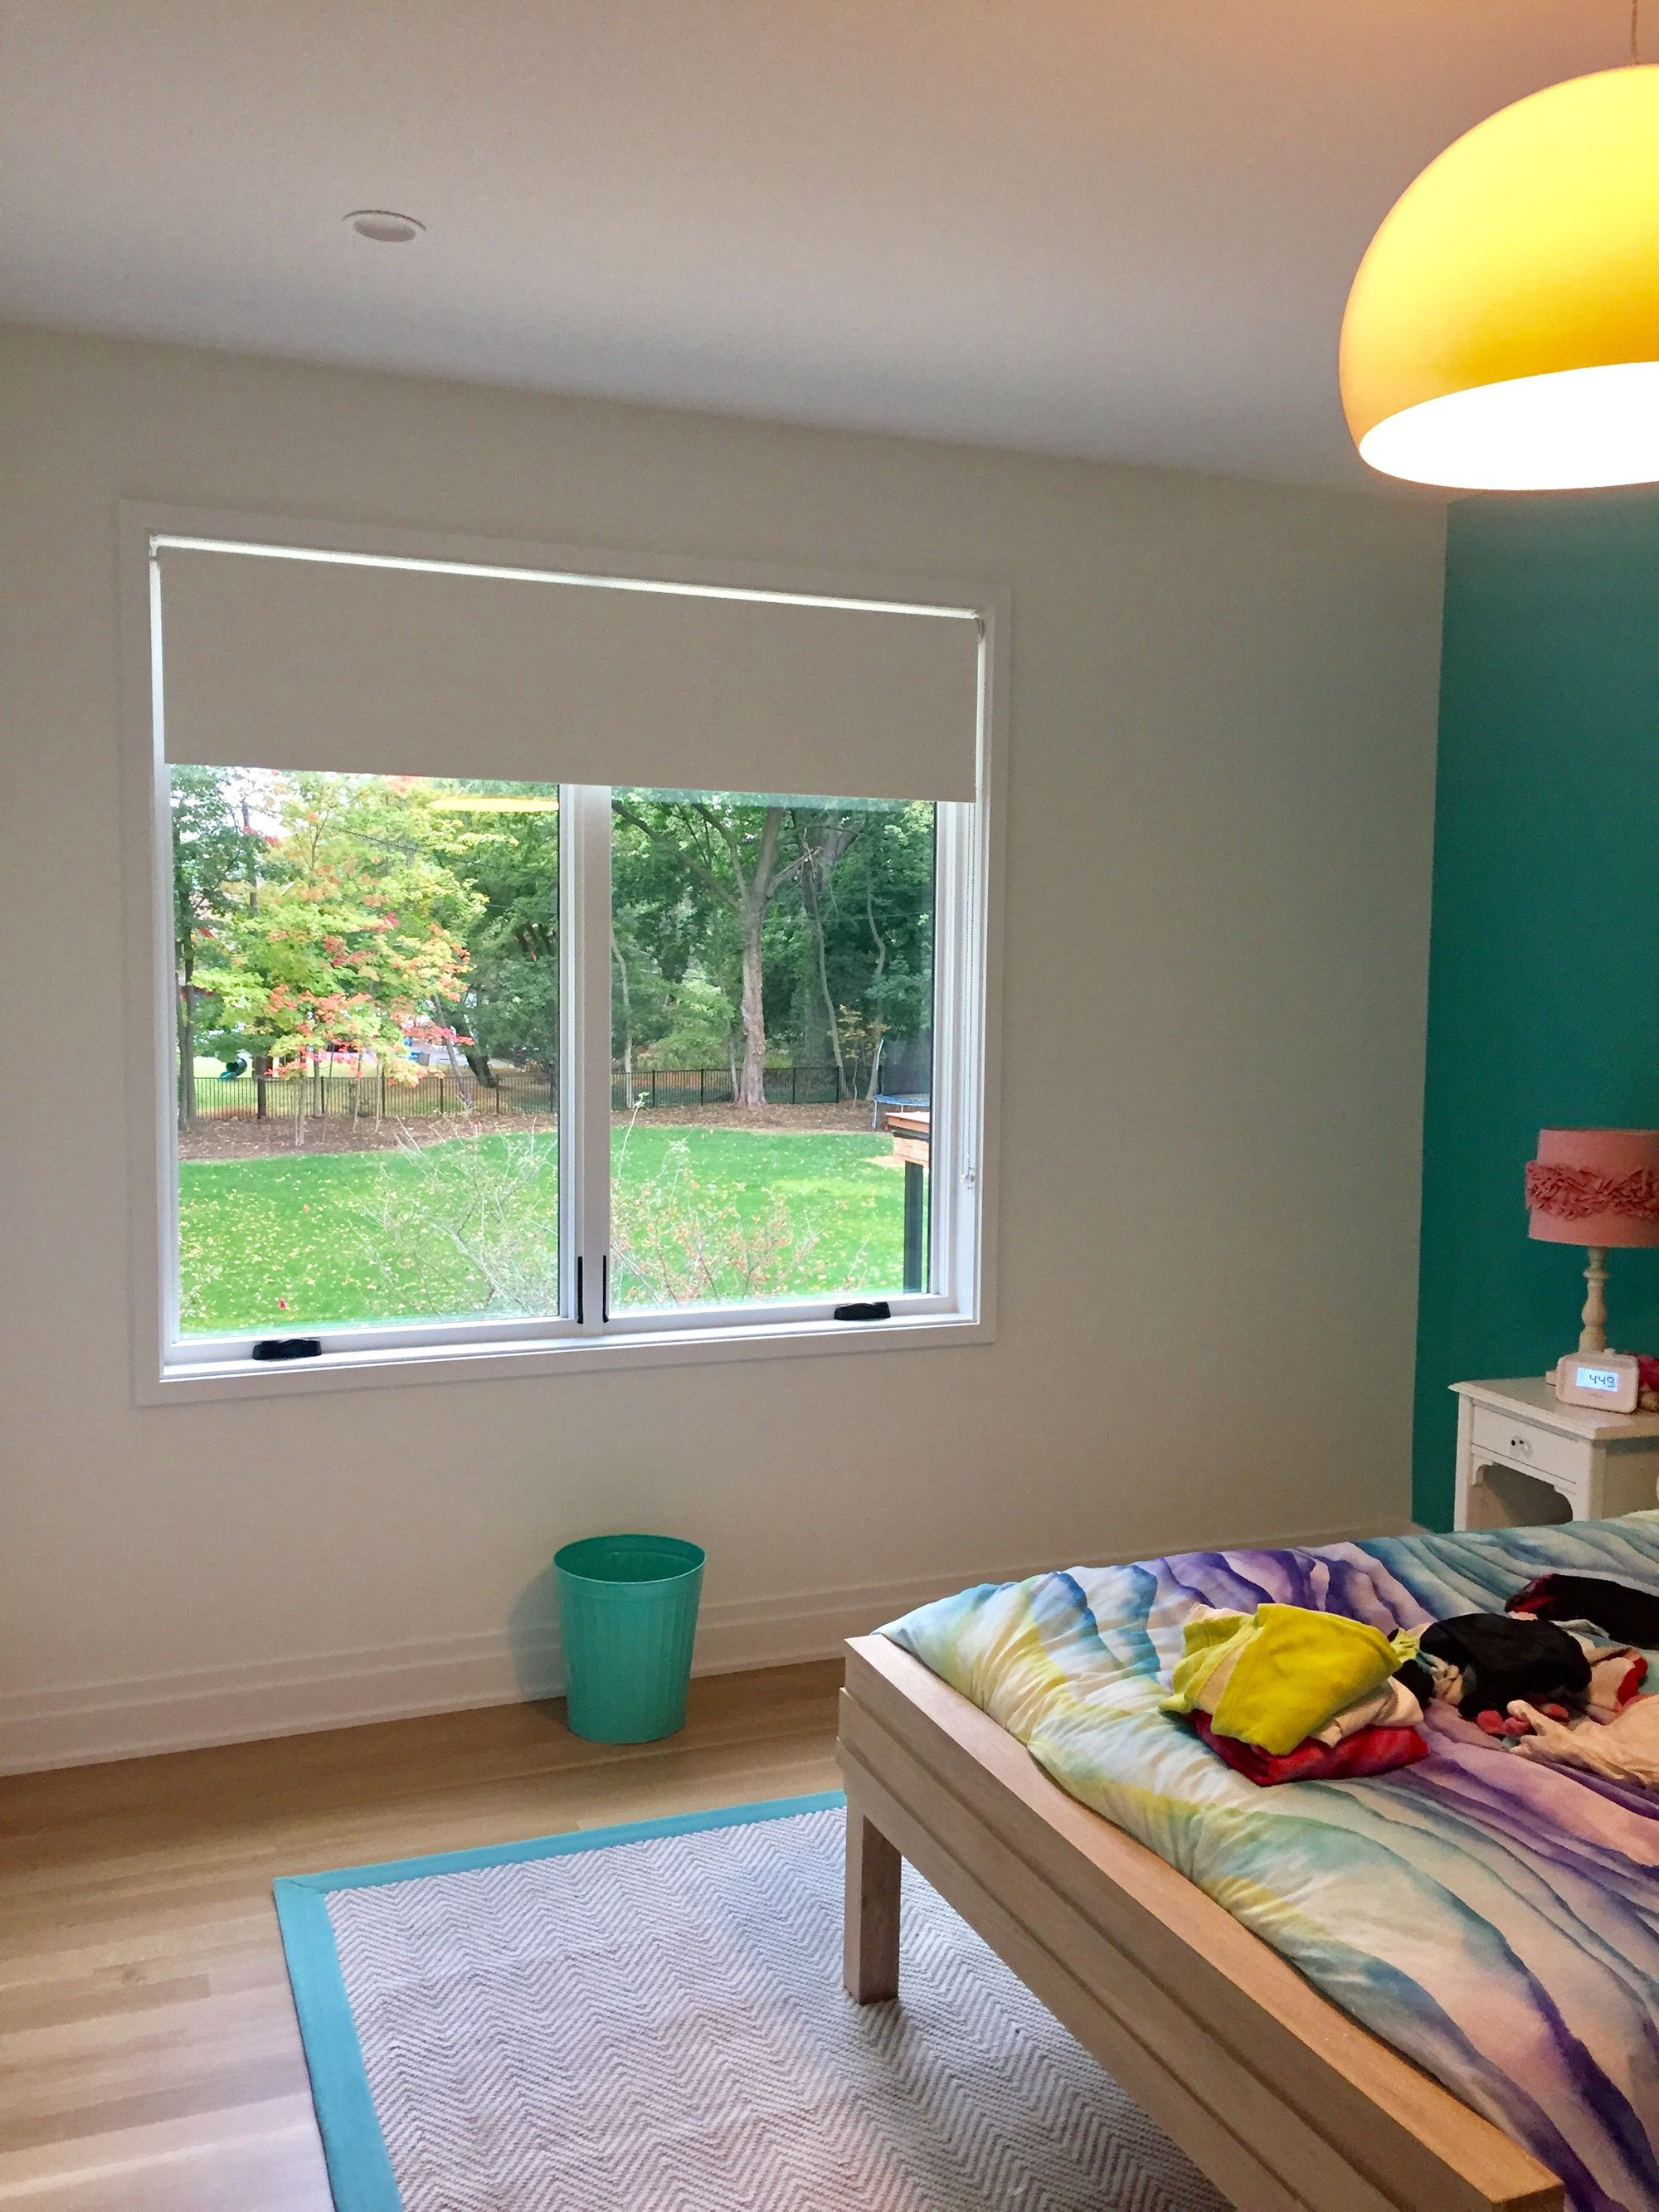 Motorized blackout roller shades are safe, easy to operate